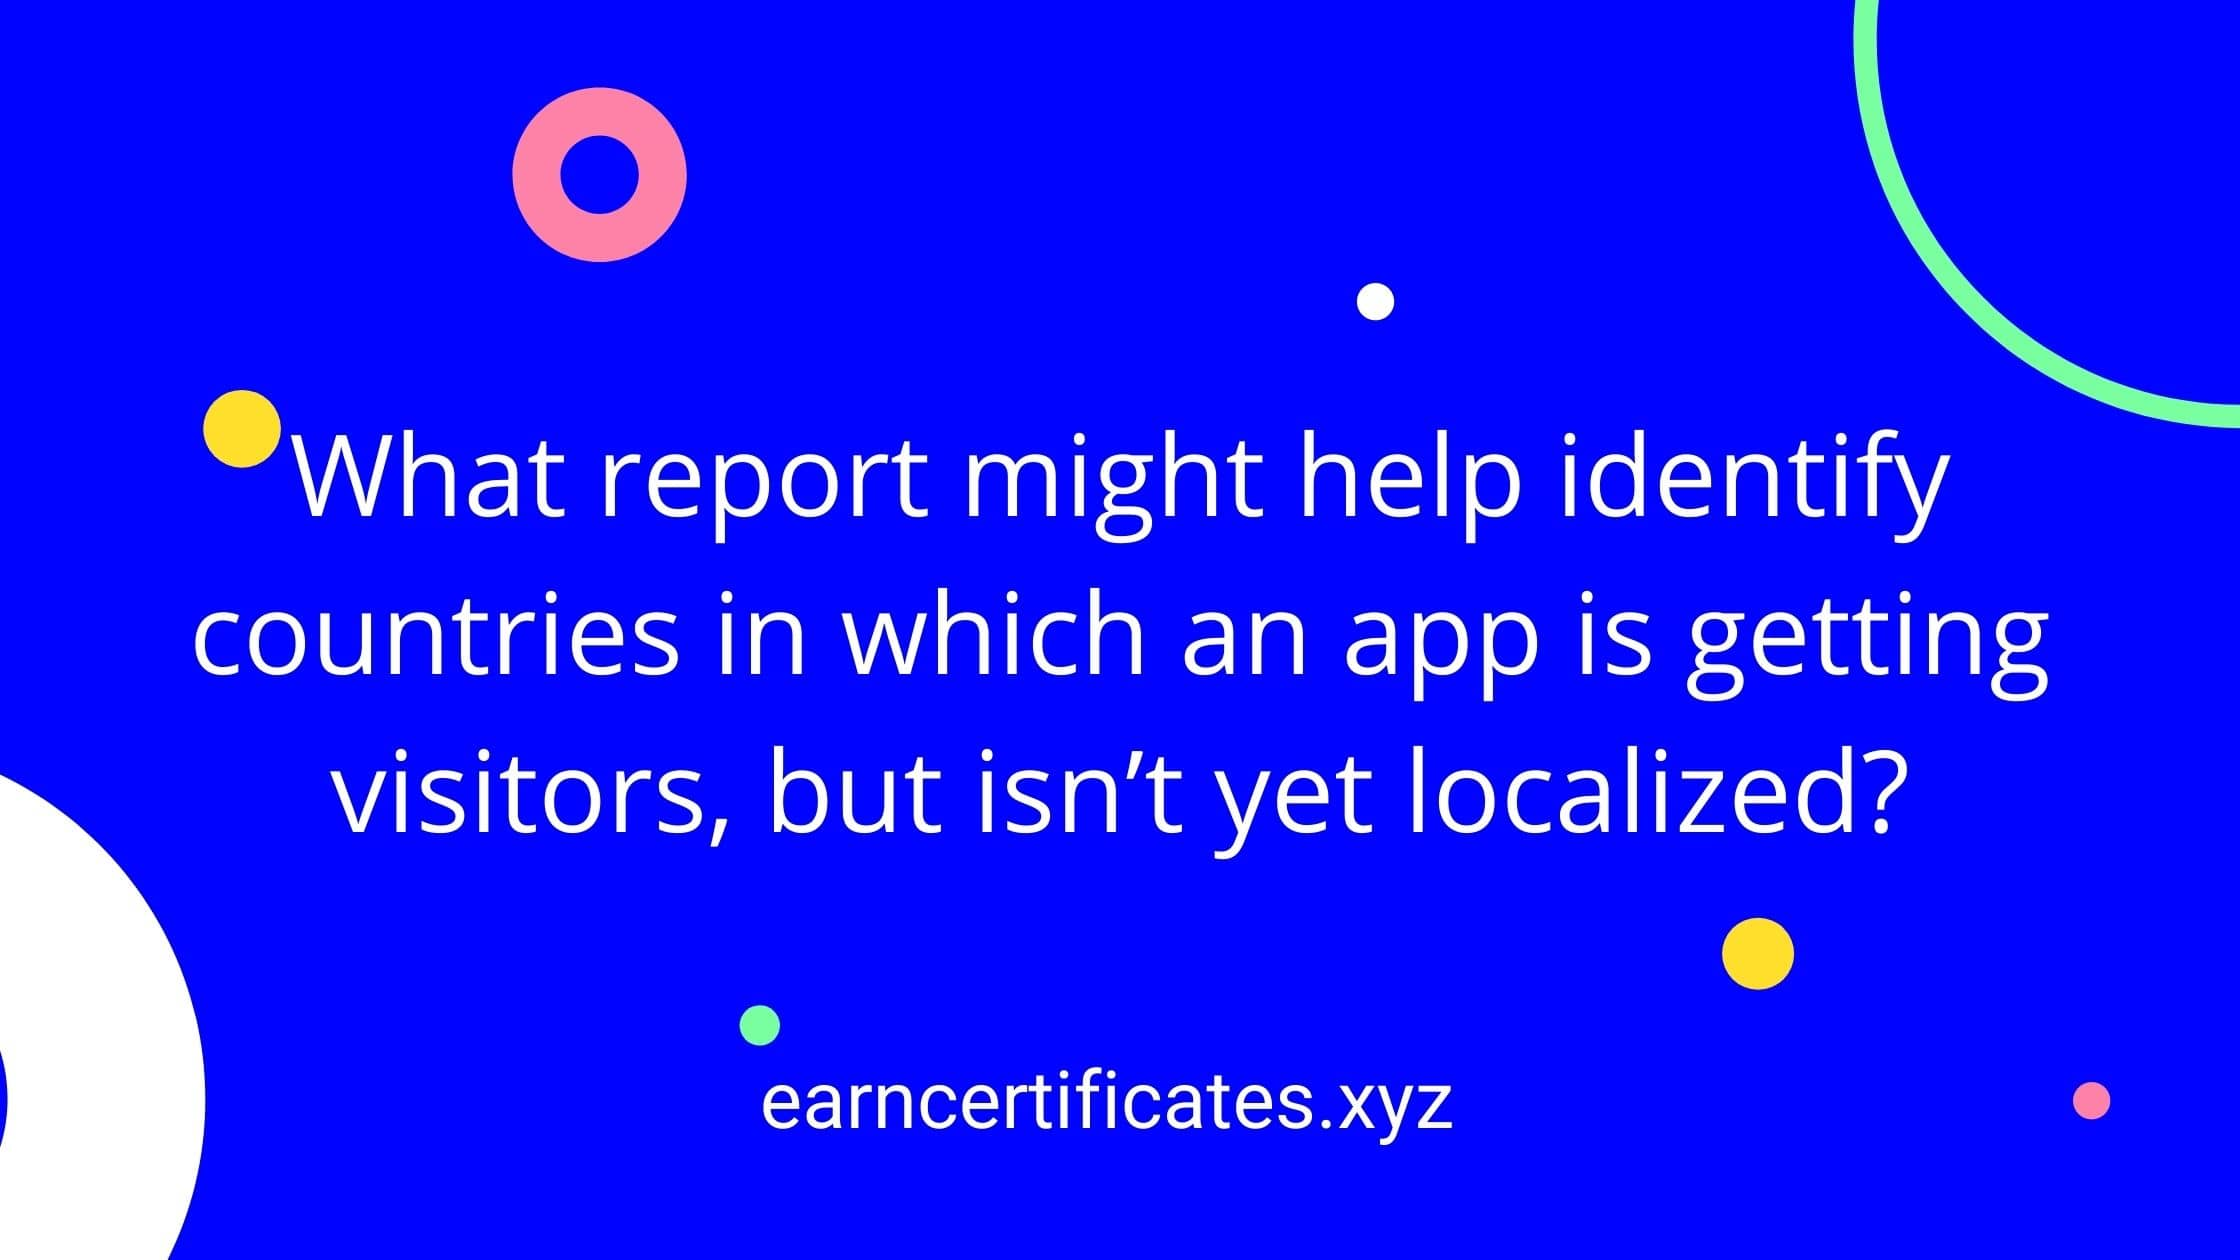 What report might help identify countries in which an app is getting visitors, but isn't yet localized?